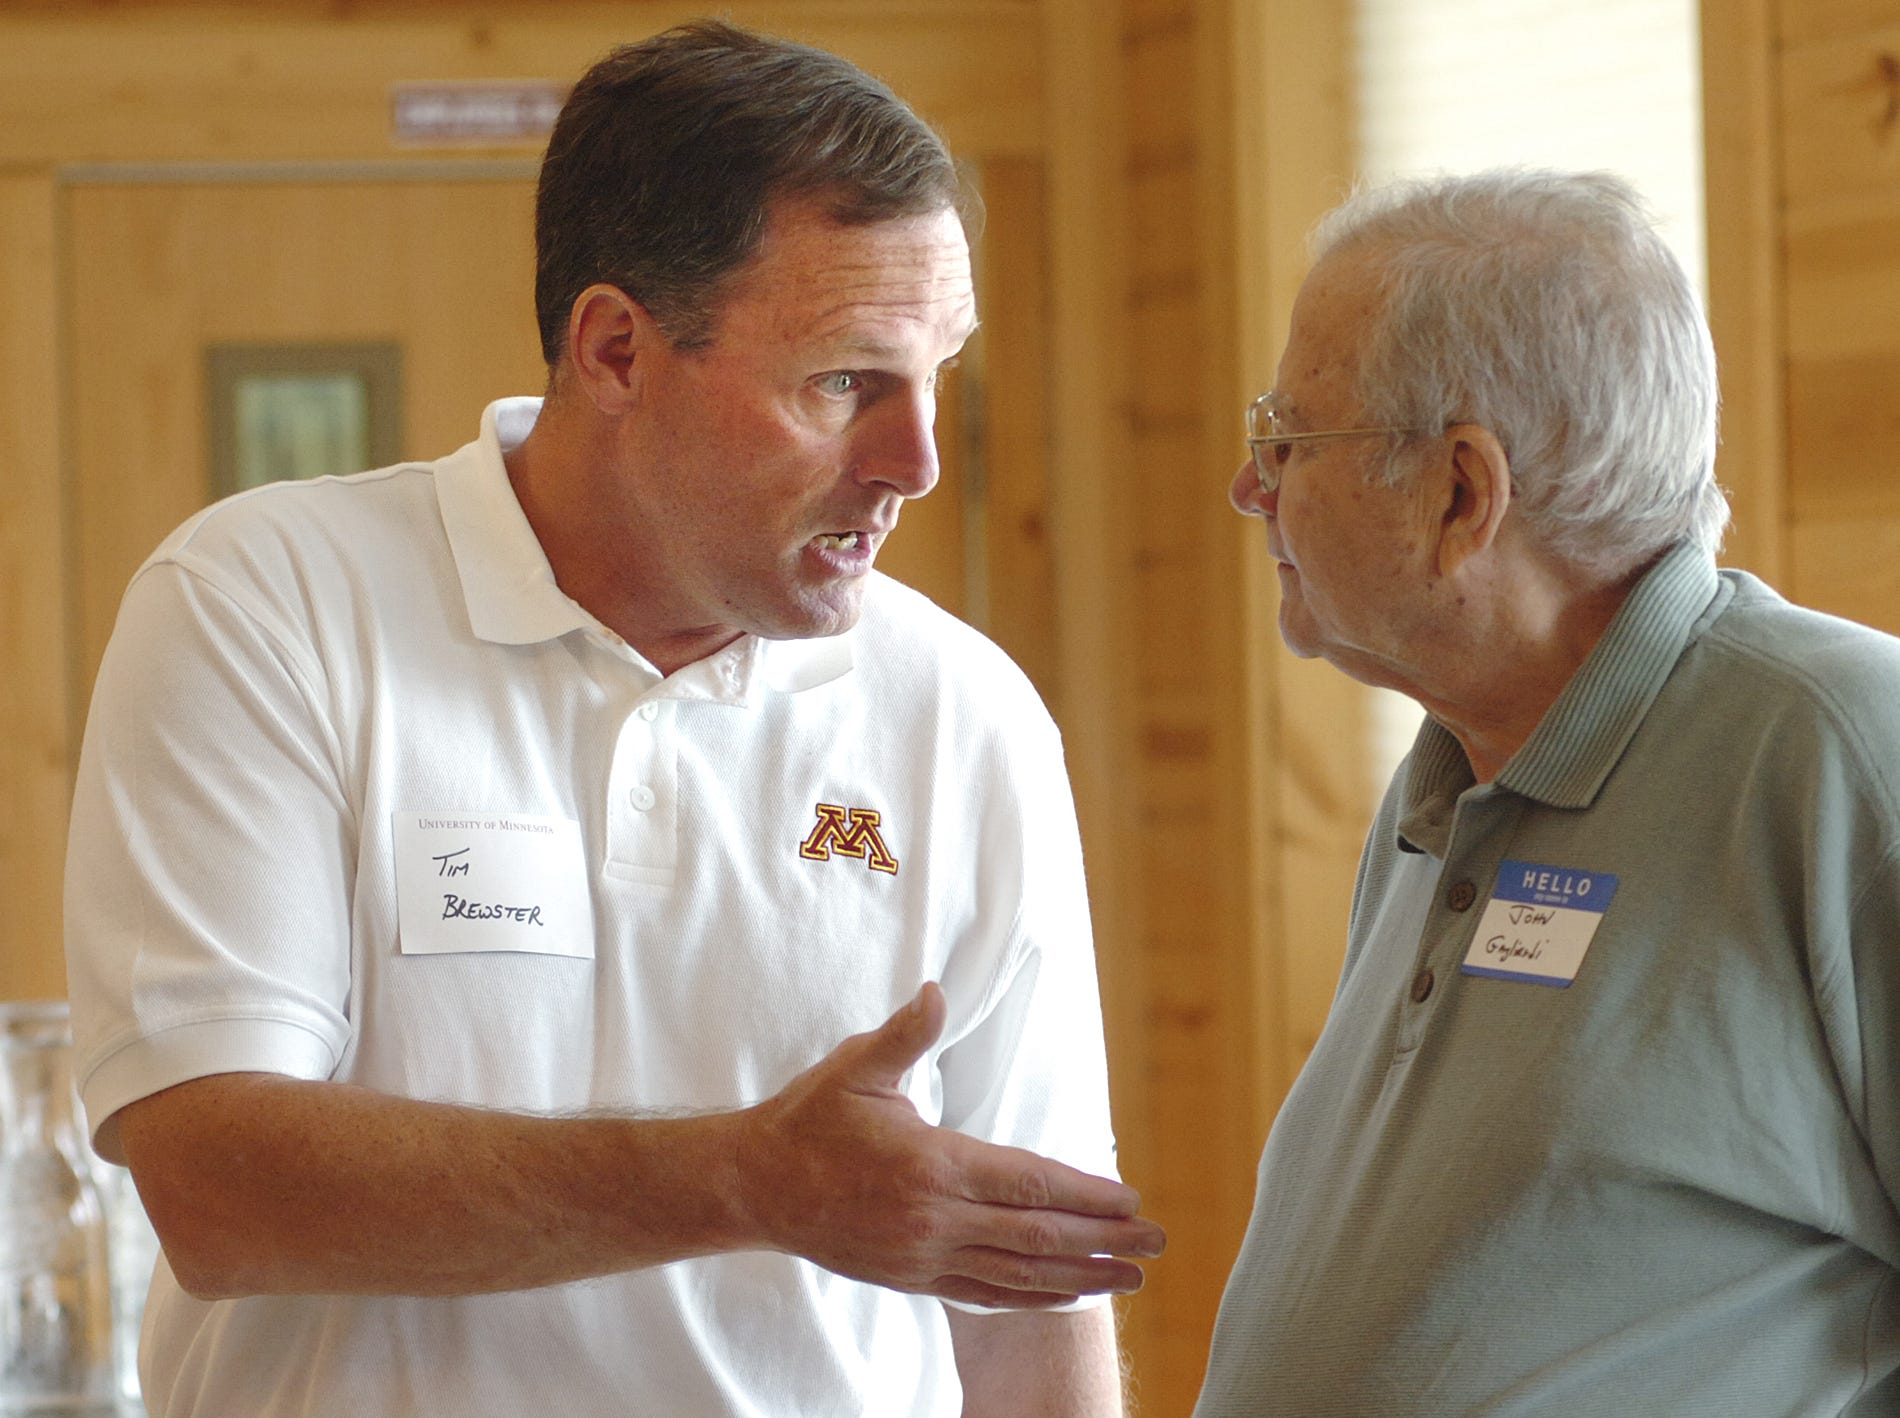 University of Minnesota head football coach Tim Brewster (left) talked shop with St. John's University coach John Gagliardi (right) before the start of the 2007 Gophers Coaches Caravan at Mulligan's Event Center in Sartell.